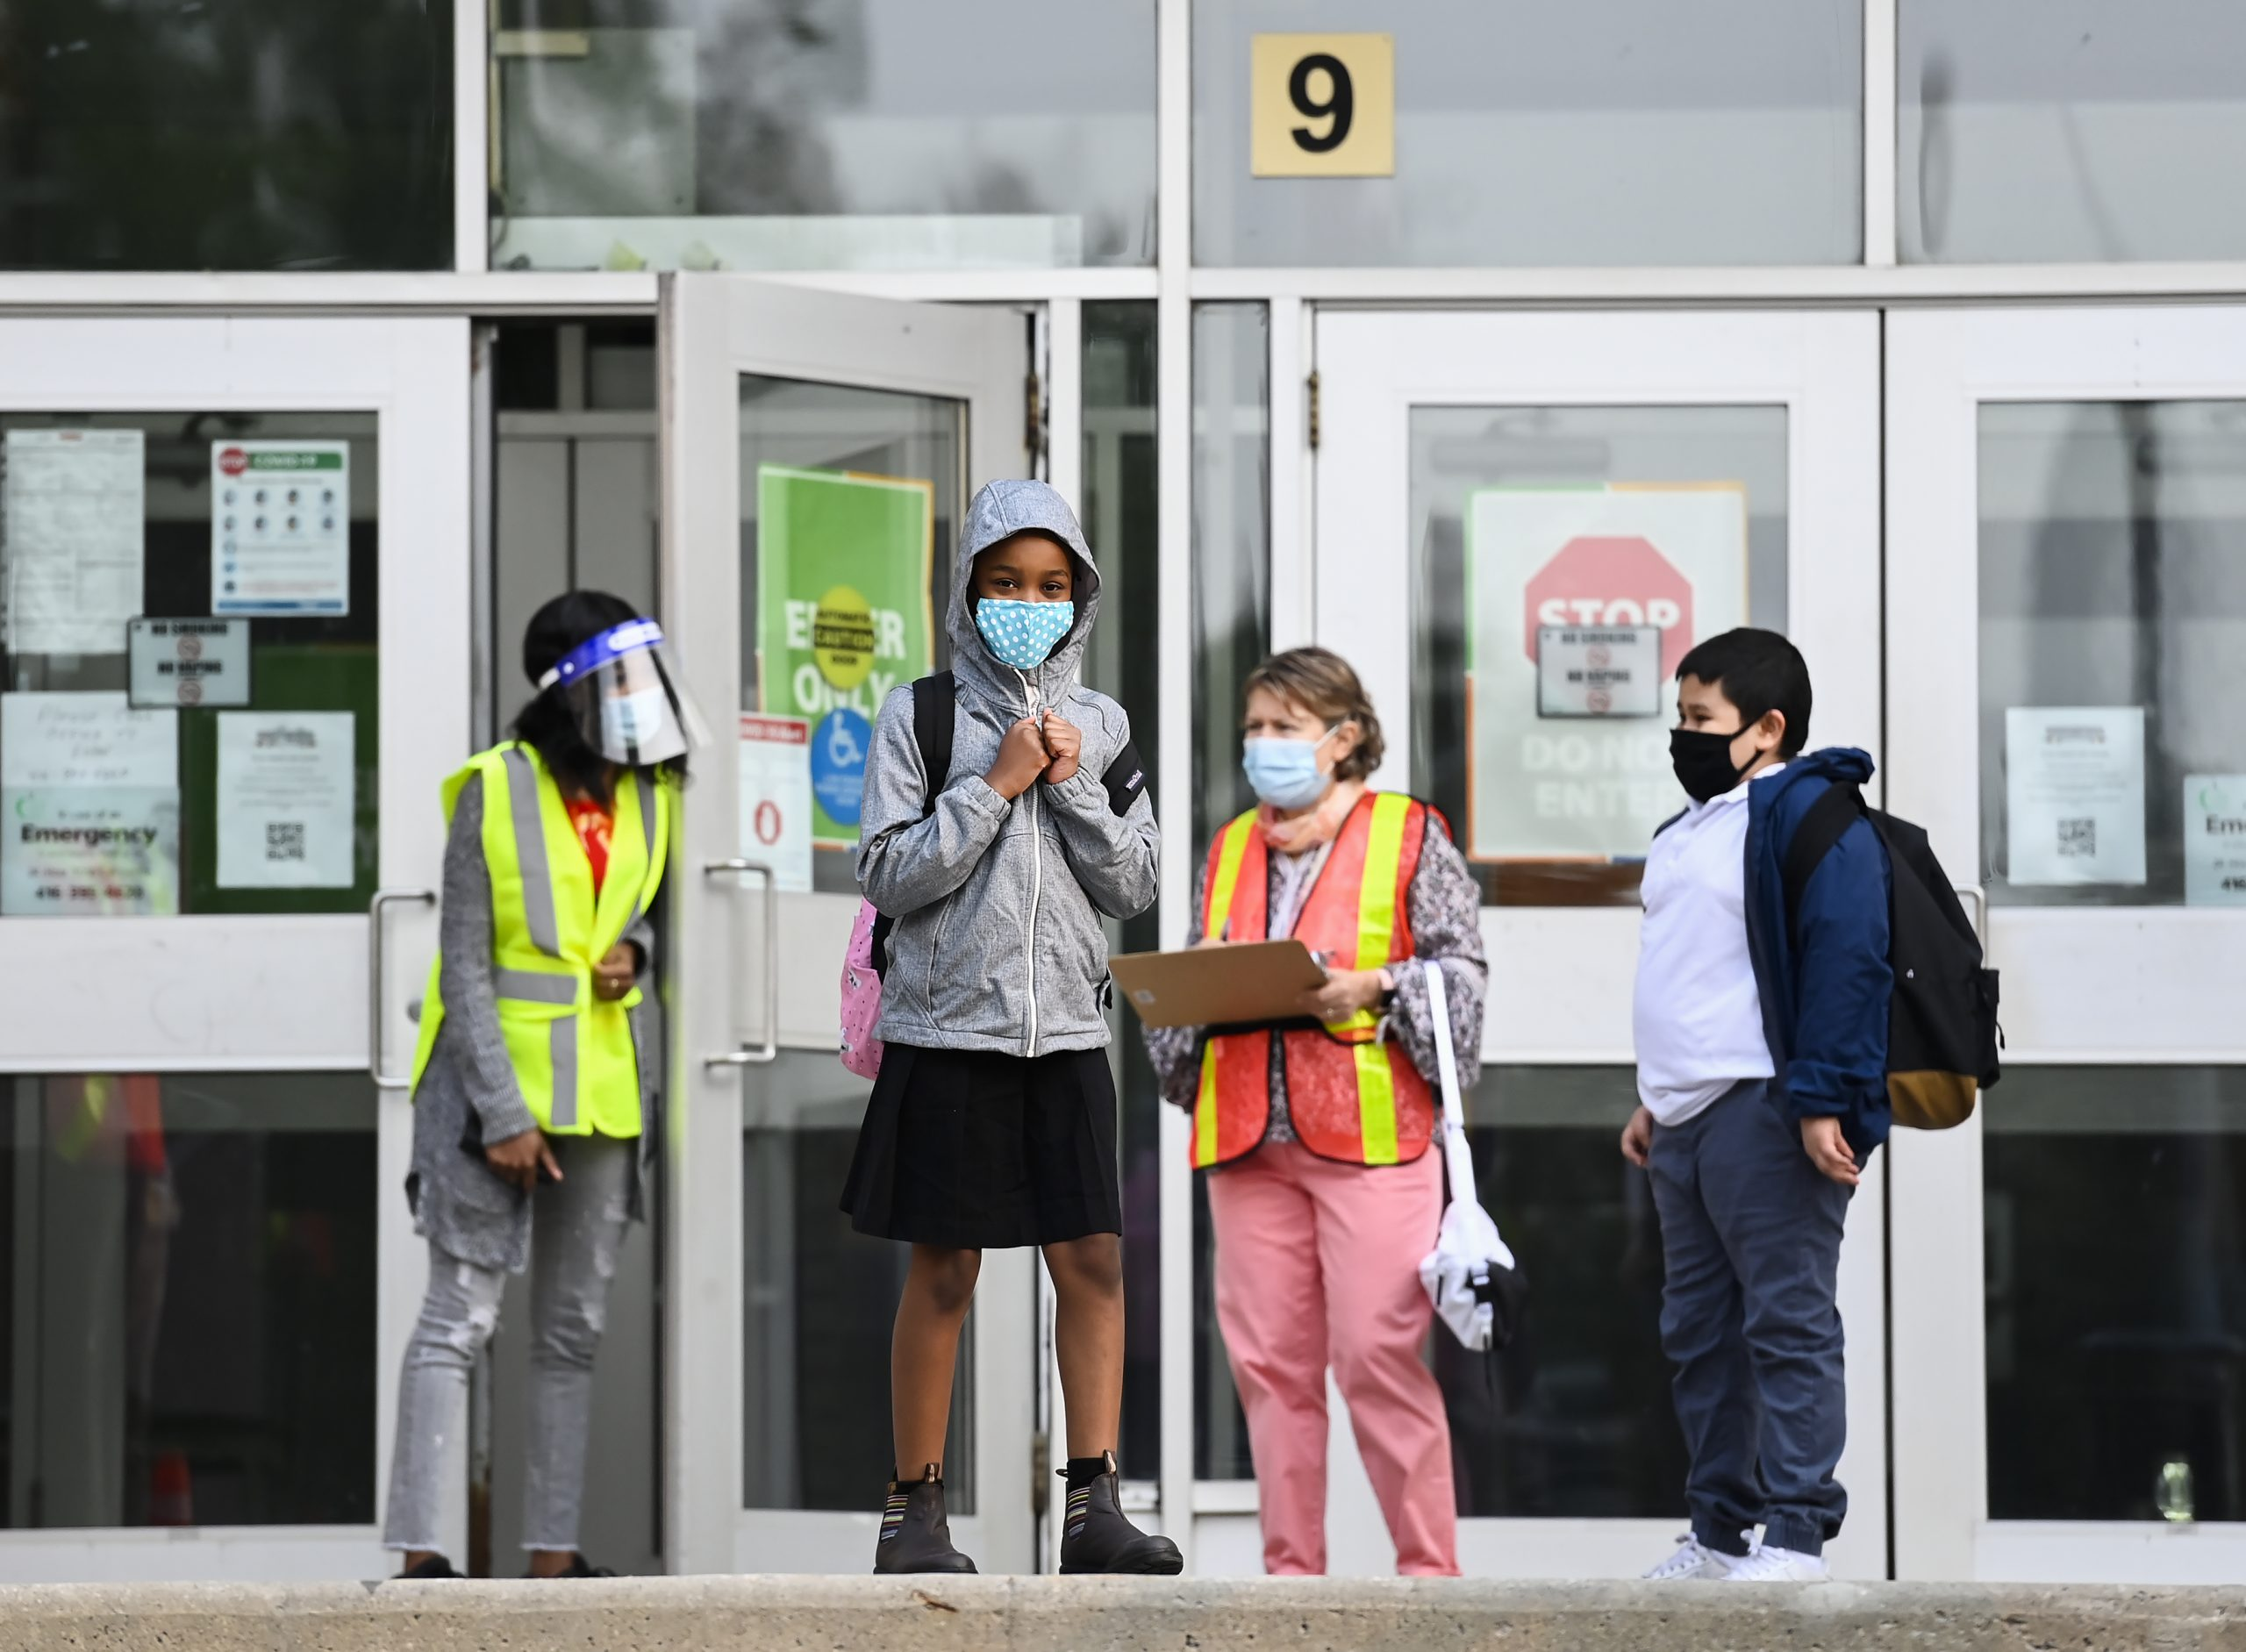 Ontario Reports Record Covid 19 Cases More Than 2 000 For 3rd Straight Day 680 News